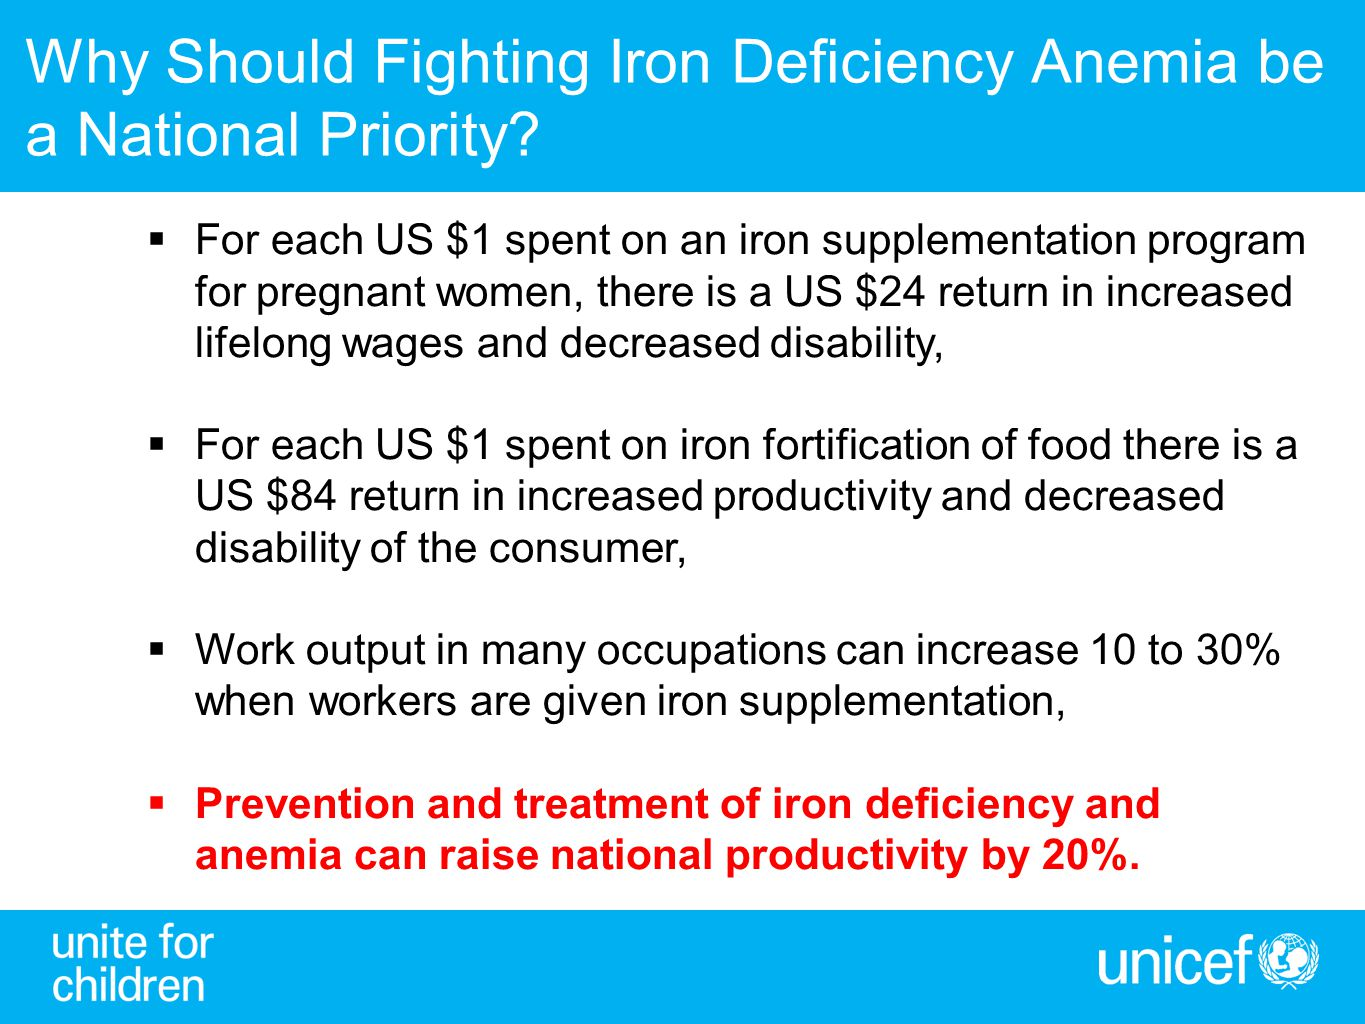 Why Should Fighting Iron Deficiency Anemia be a National Priority